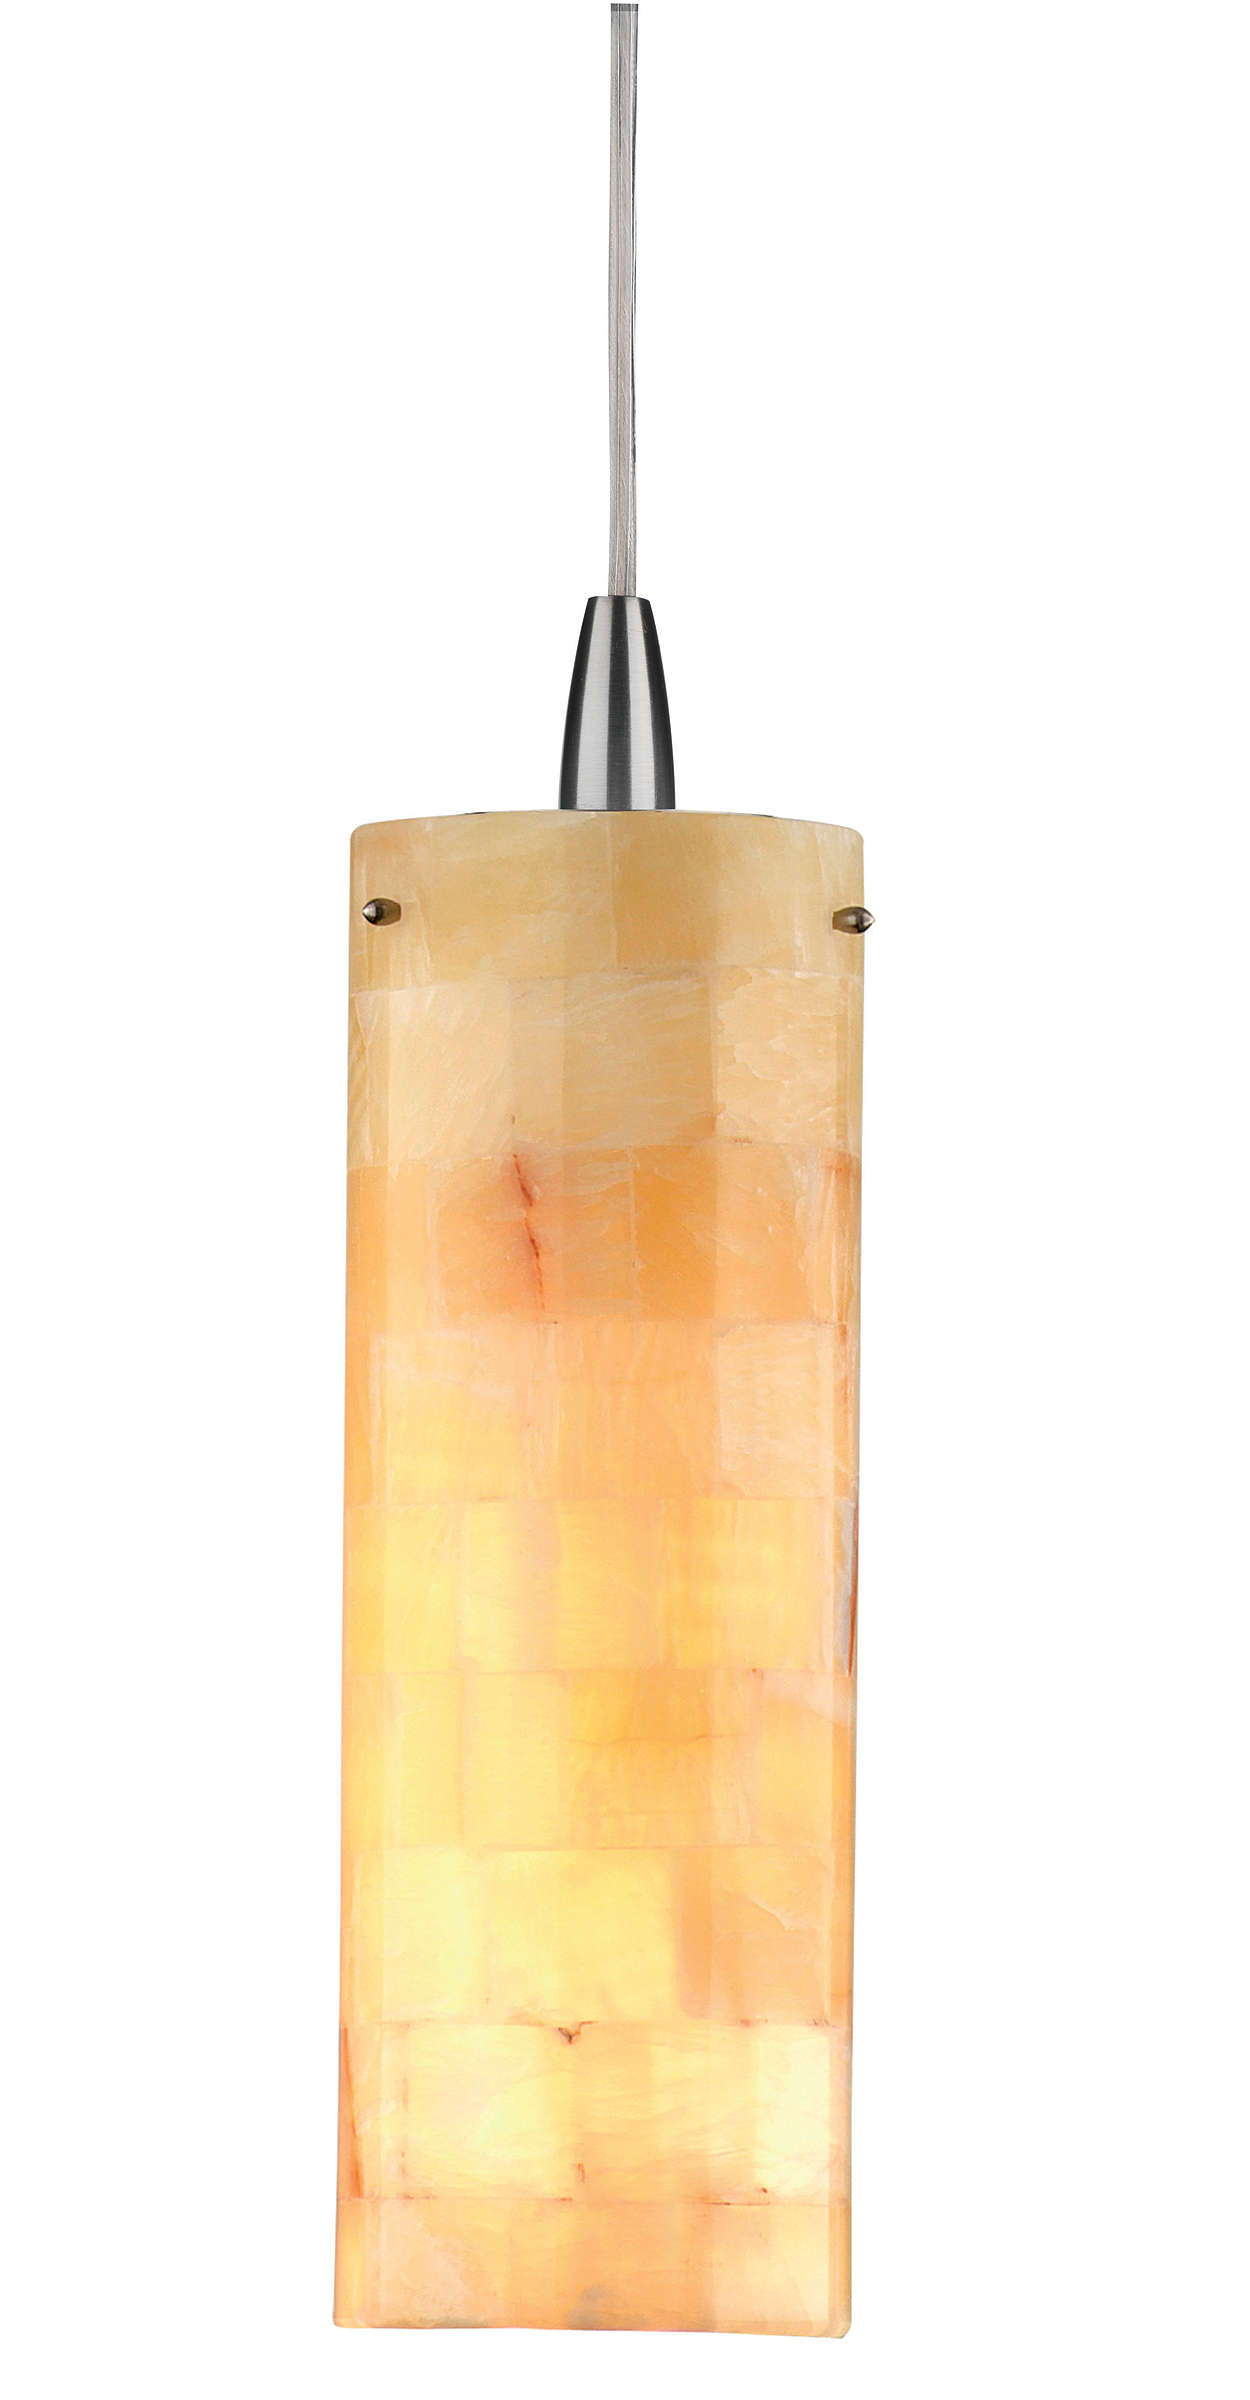 Onyx Mosaic 1-light pendant in Satin Nickel finish